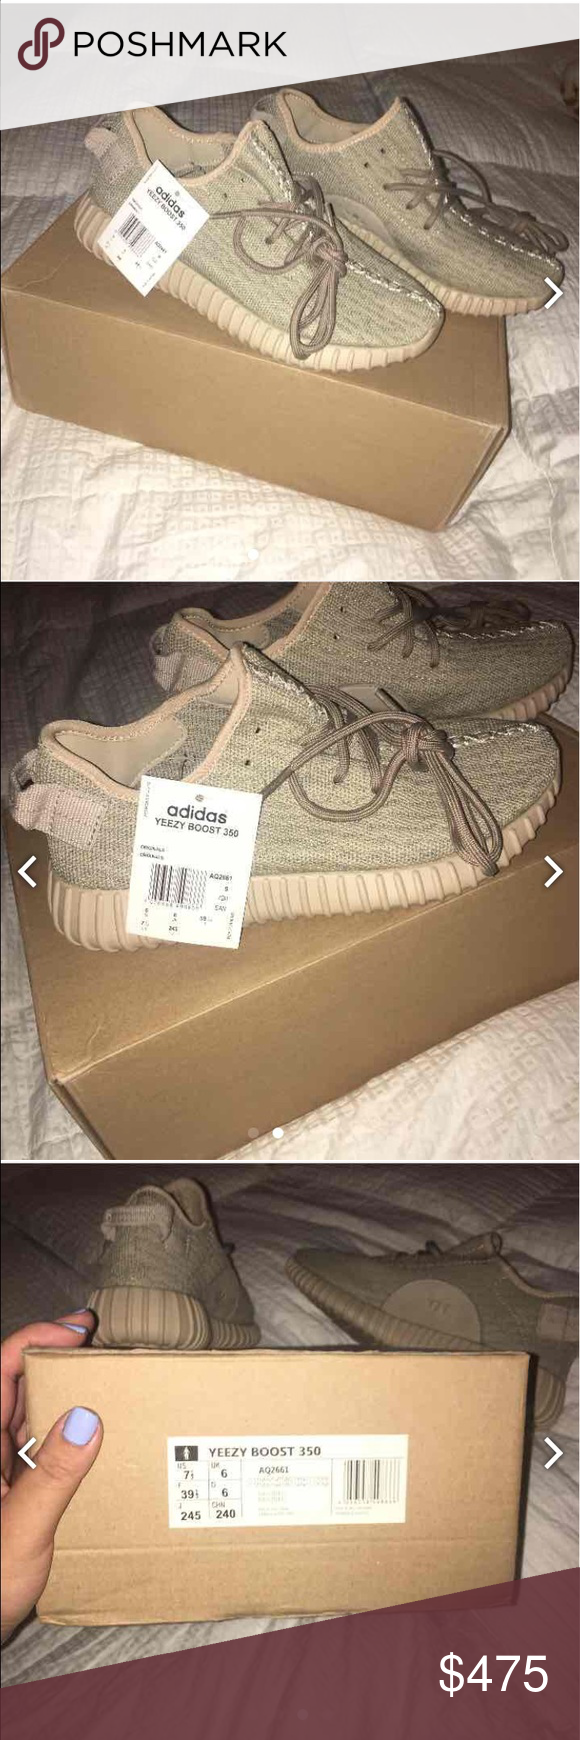 Yeezy boost 350 oxford tan 100 authentic. Ex BF won it in